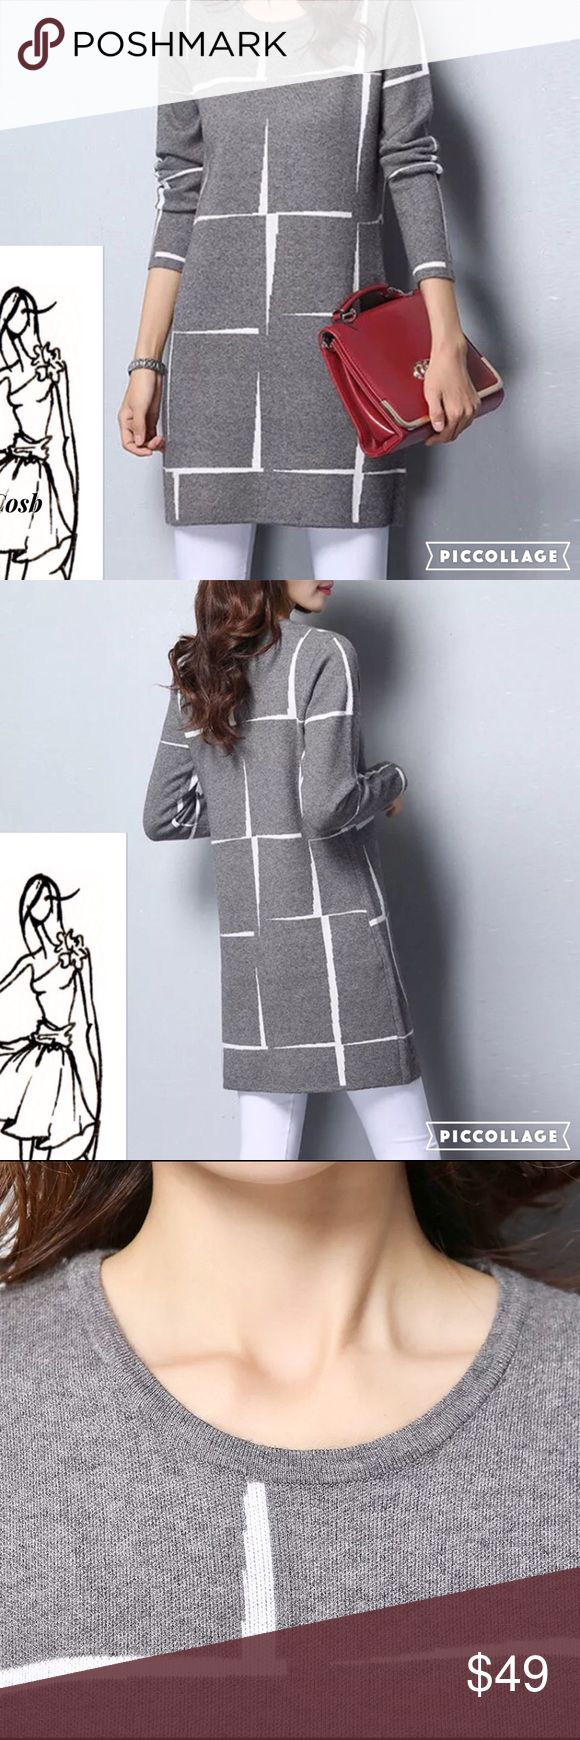 HP!!🎉2 Left! Classic Stunning Gray Abstract Dress Beautiful, Classical Gray & White Abstract Print Sweater Dress. Wear as a mini or with white or gray jeans/leggings. Sweater has rounded  neckline & long sleeves. Beautiful! Cosb Dresses Mini